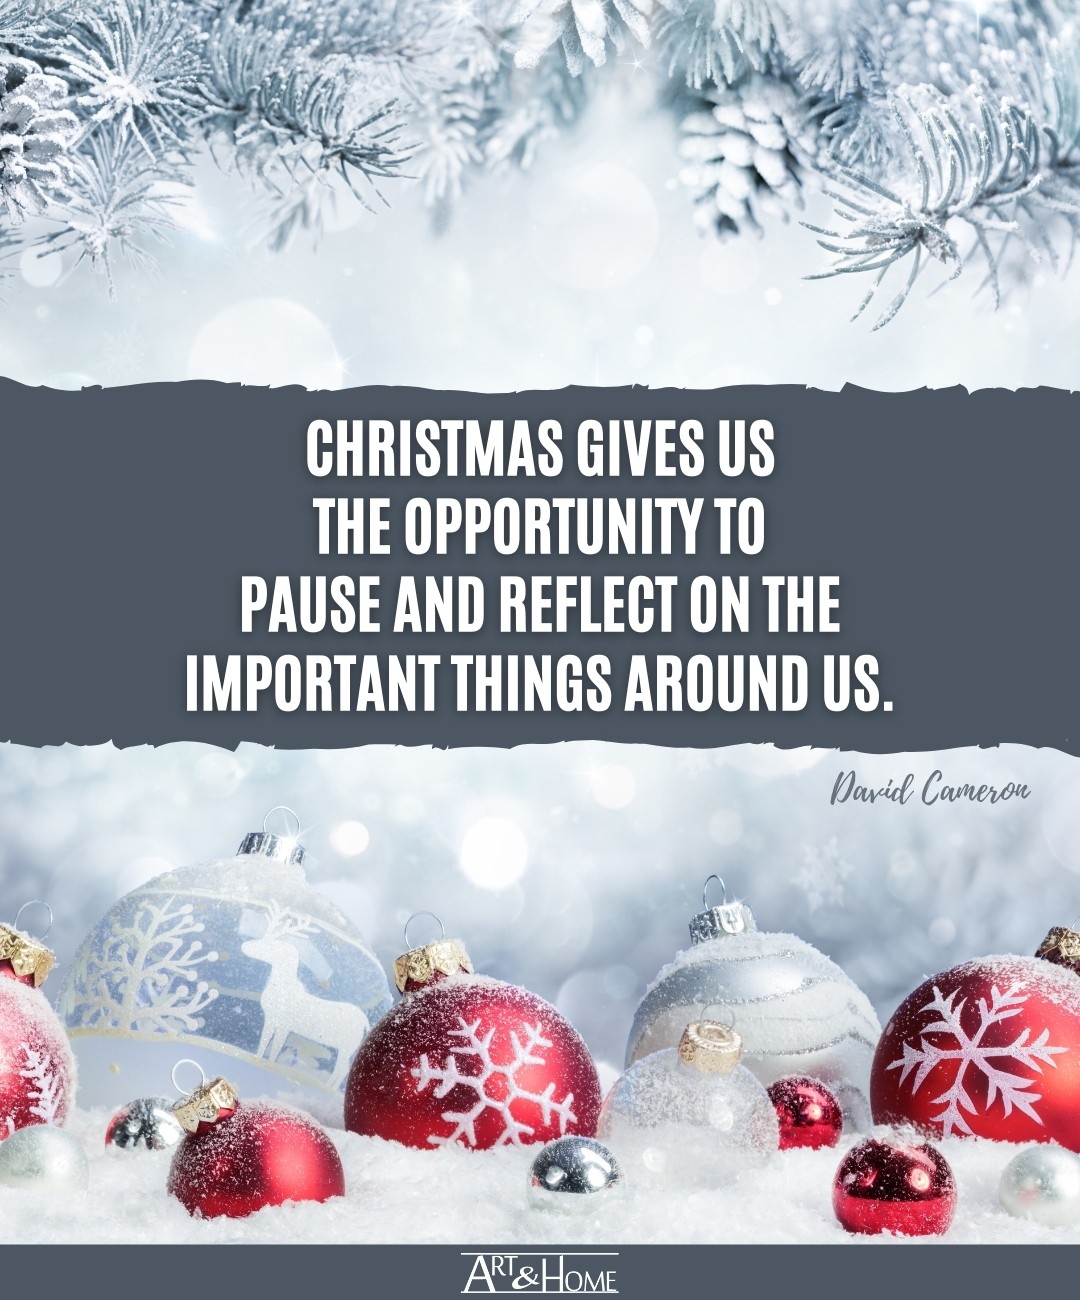 David Cameron Christmas Saying